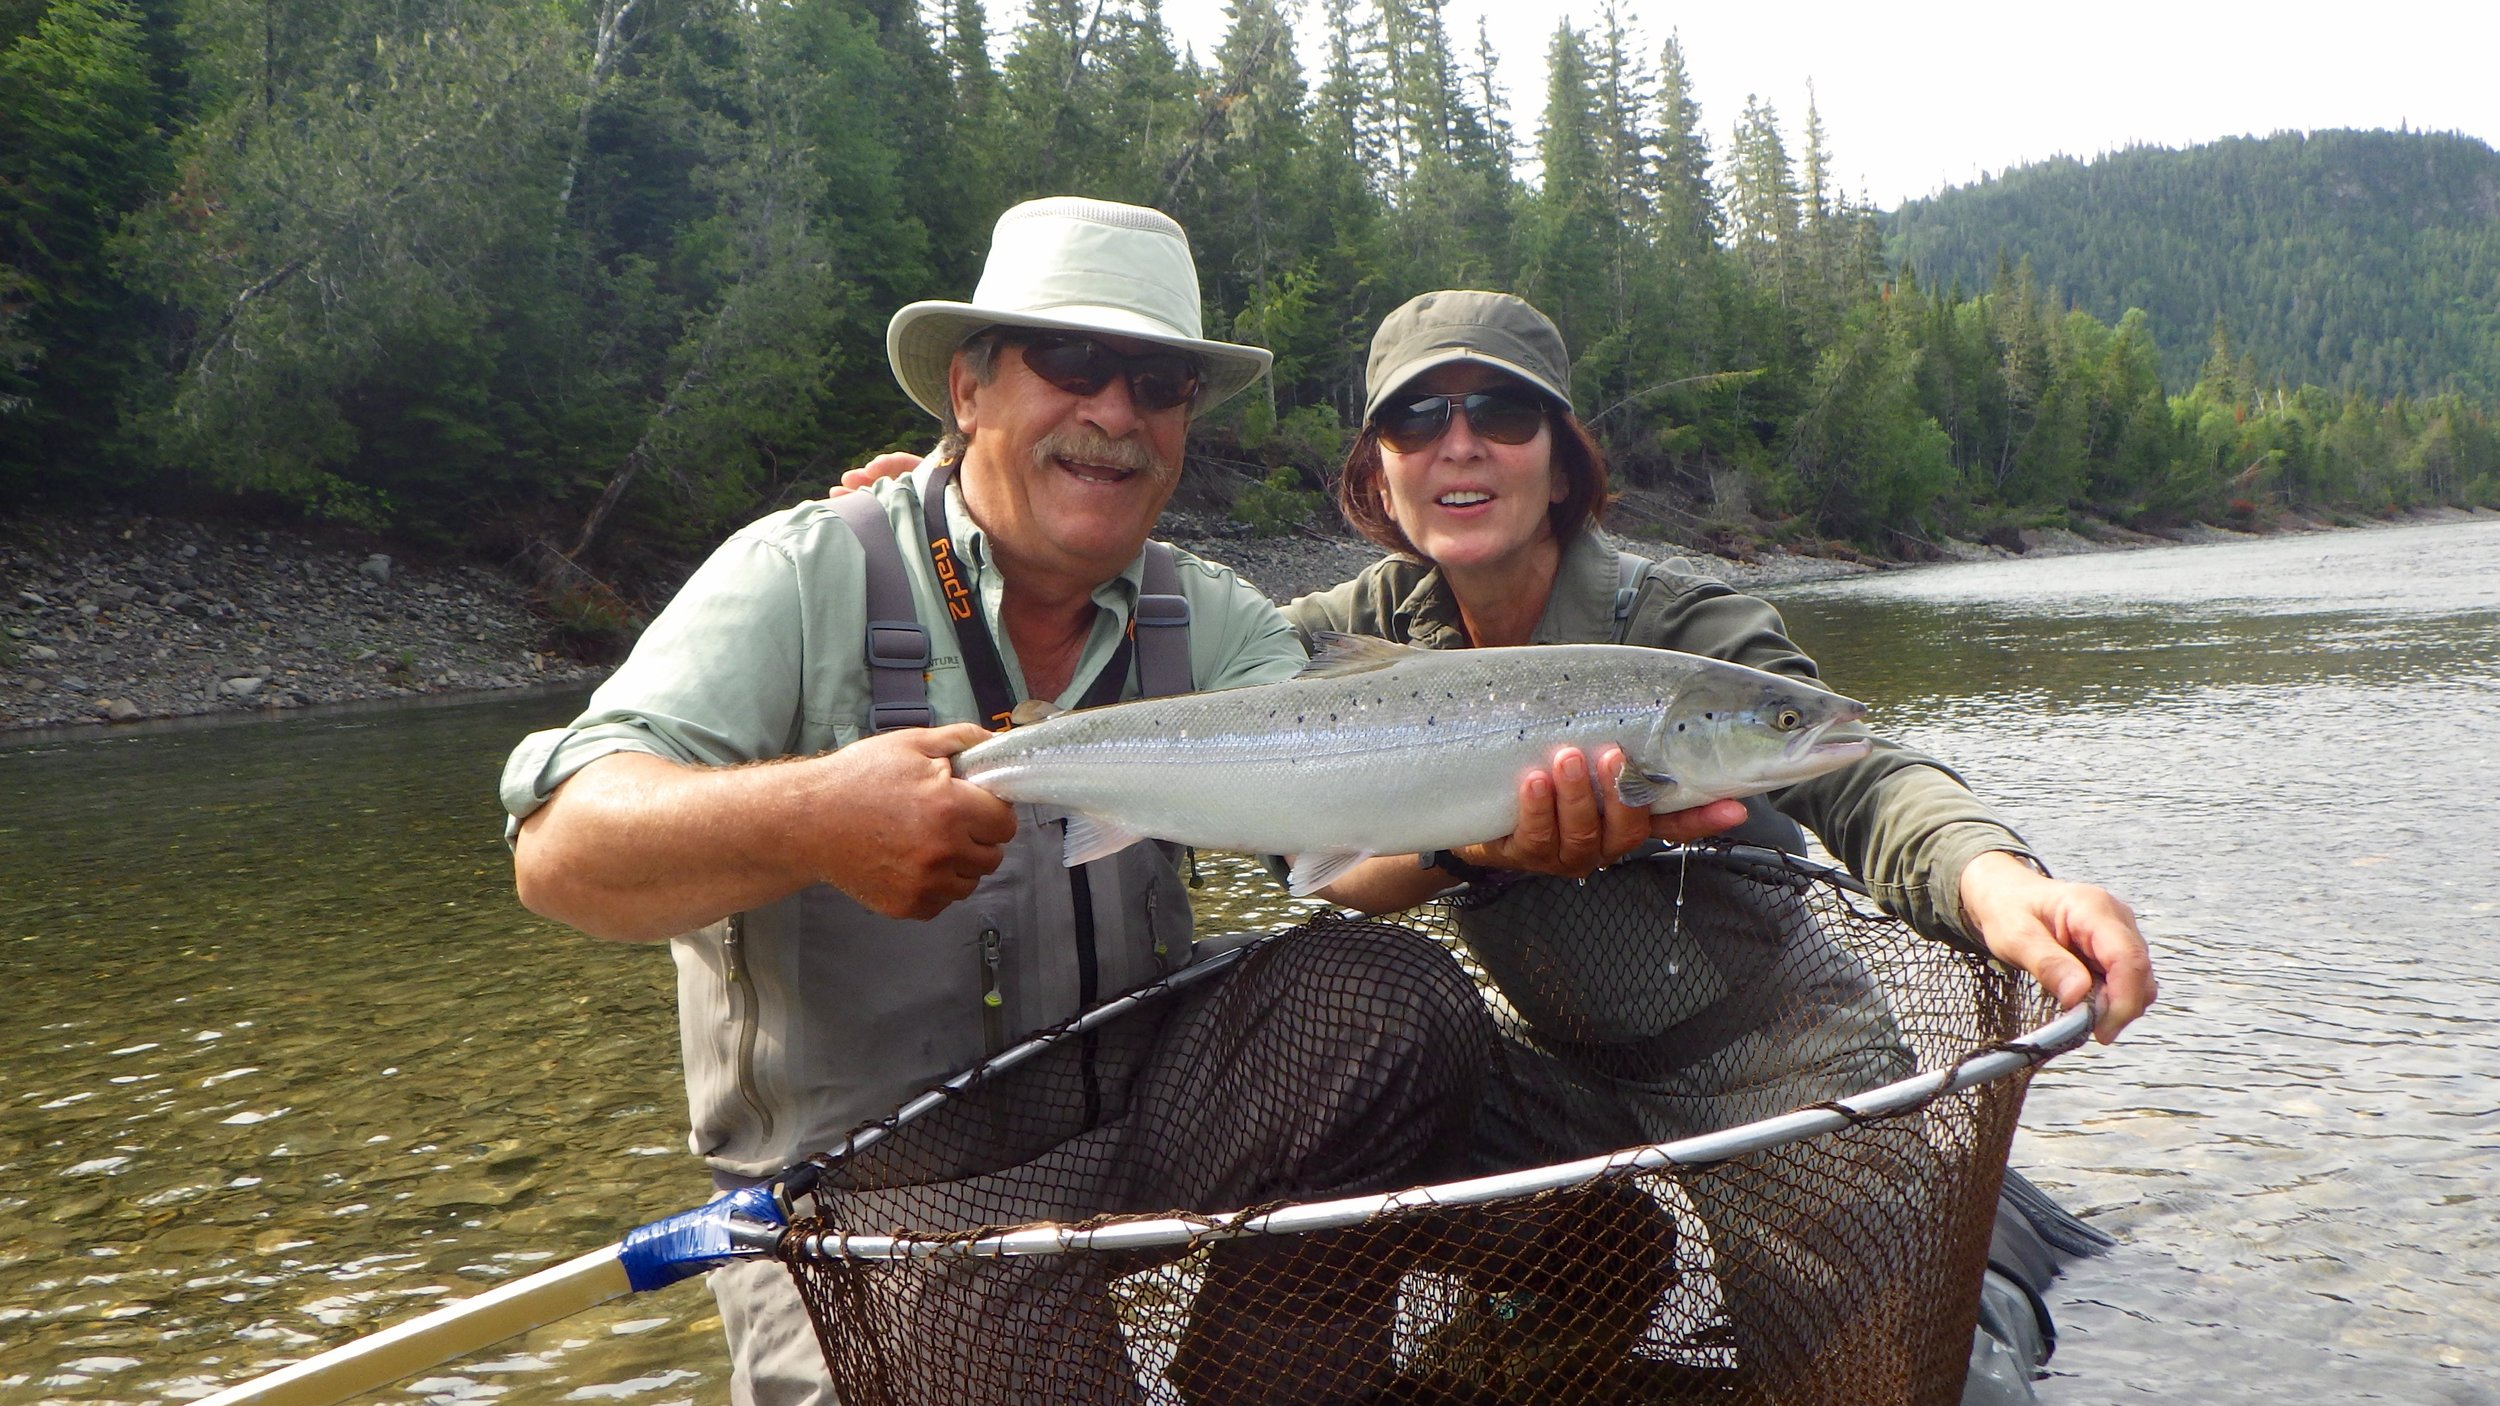 Francoise Reault landed this fine salmon on her first day out, congratulations Francoise!